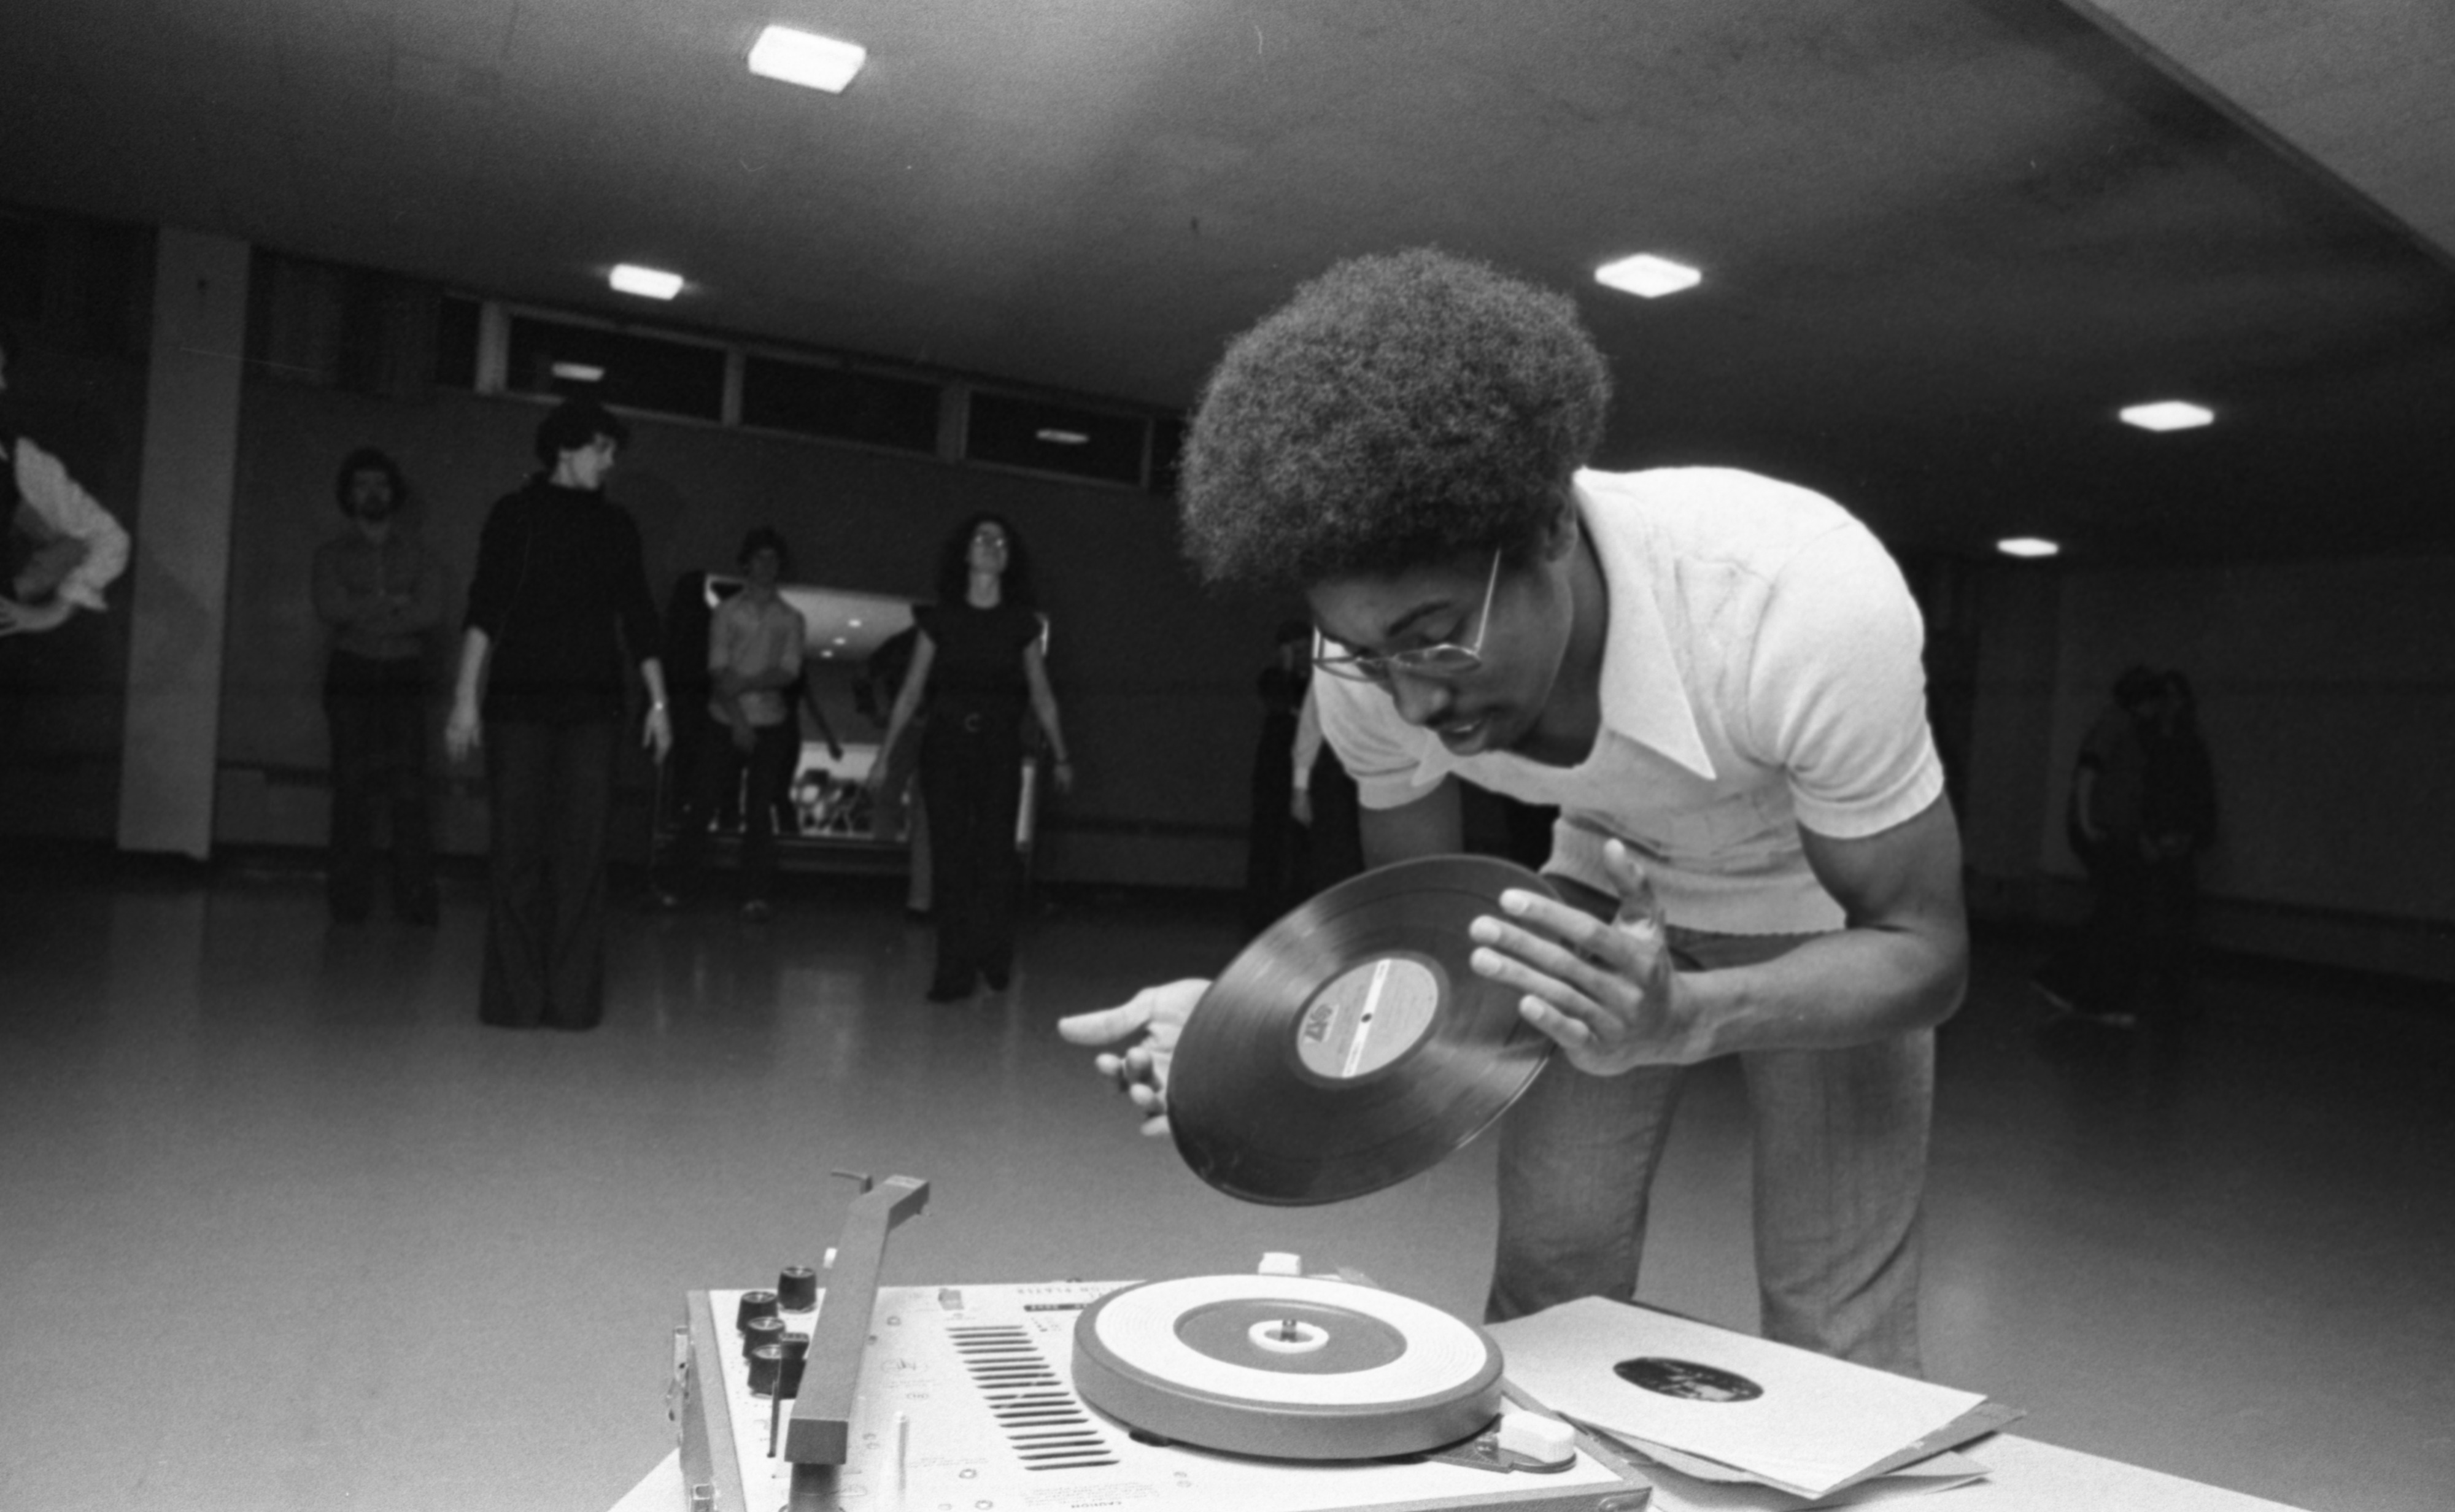 Dorian Deaver Flips A Record For His Disco Class At The Ann Arbor Y, November 1976 image